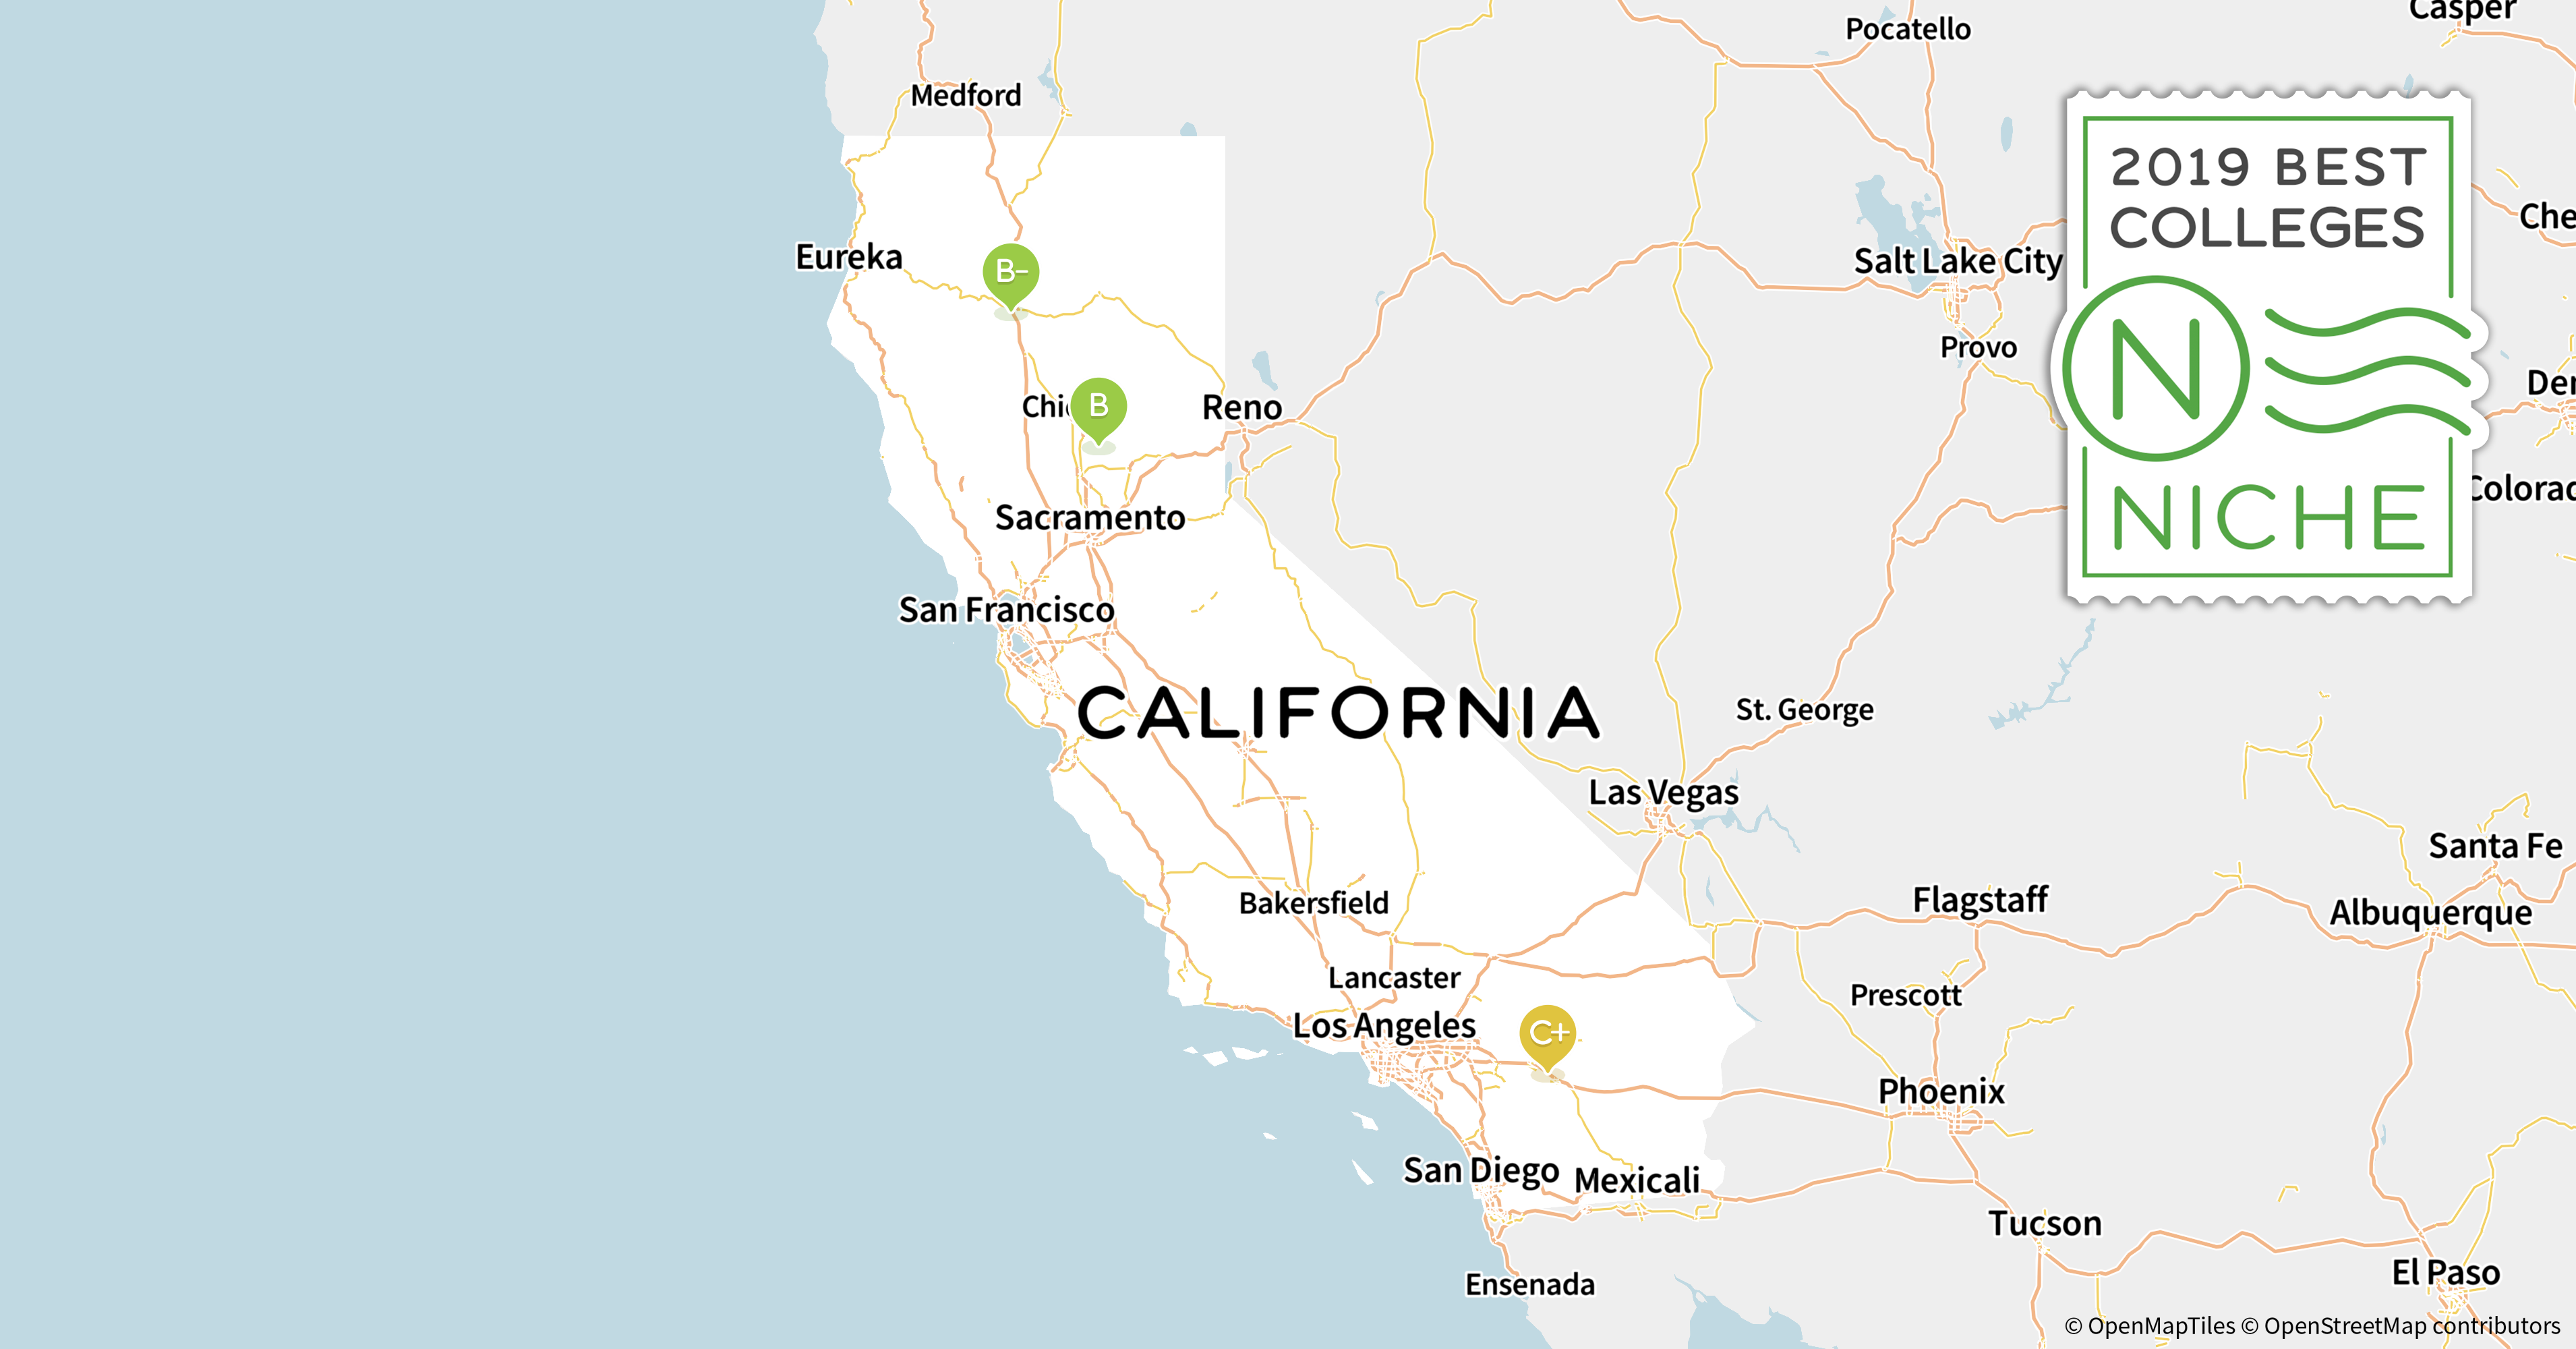 2019 Top Public Universities in California - Niche